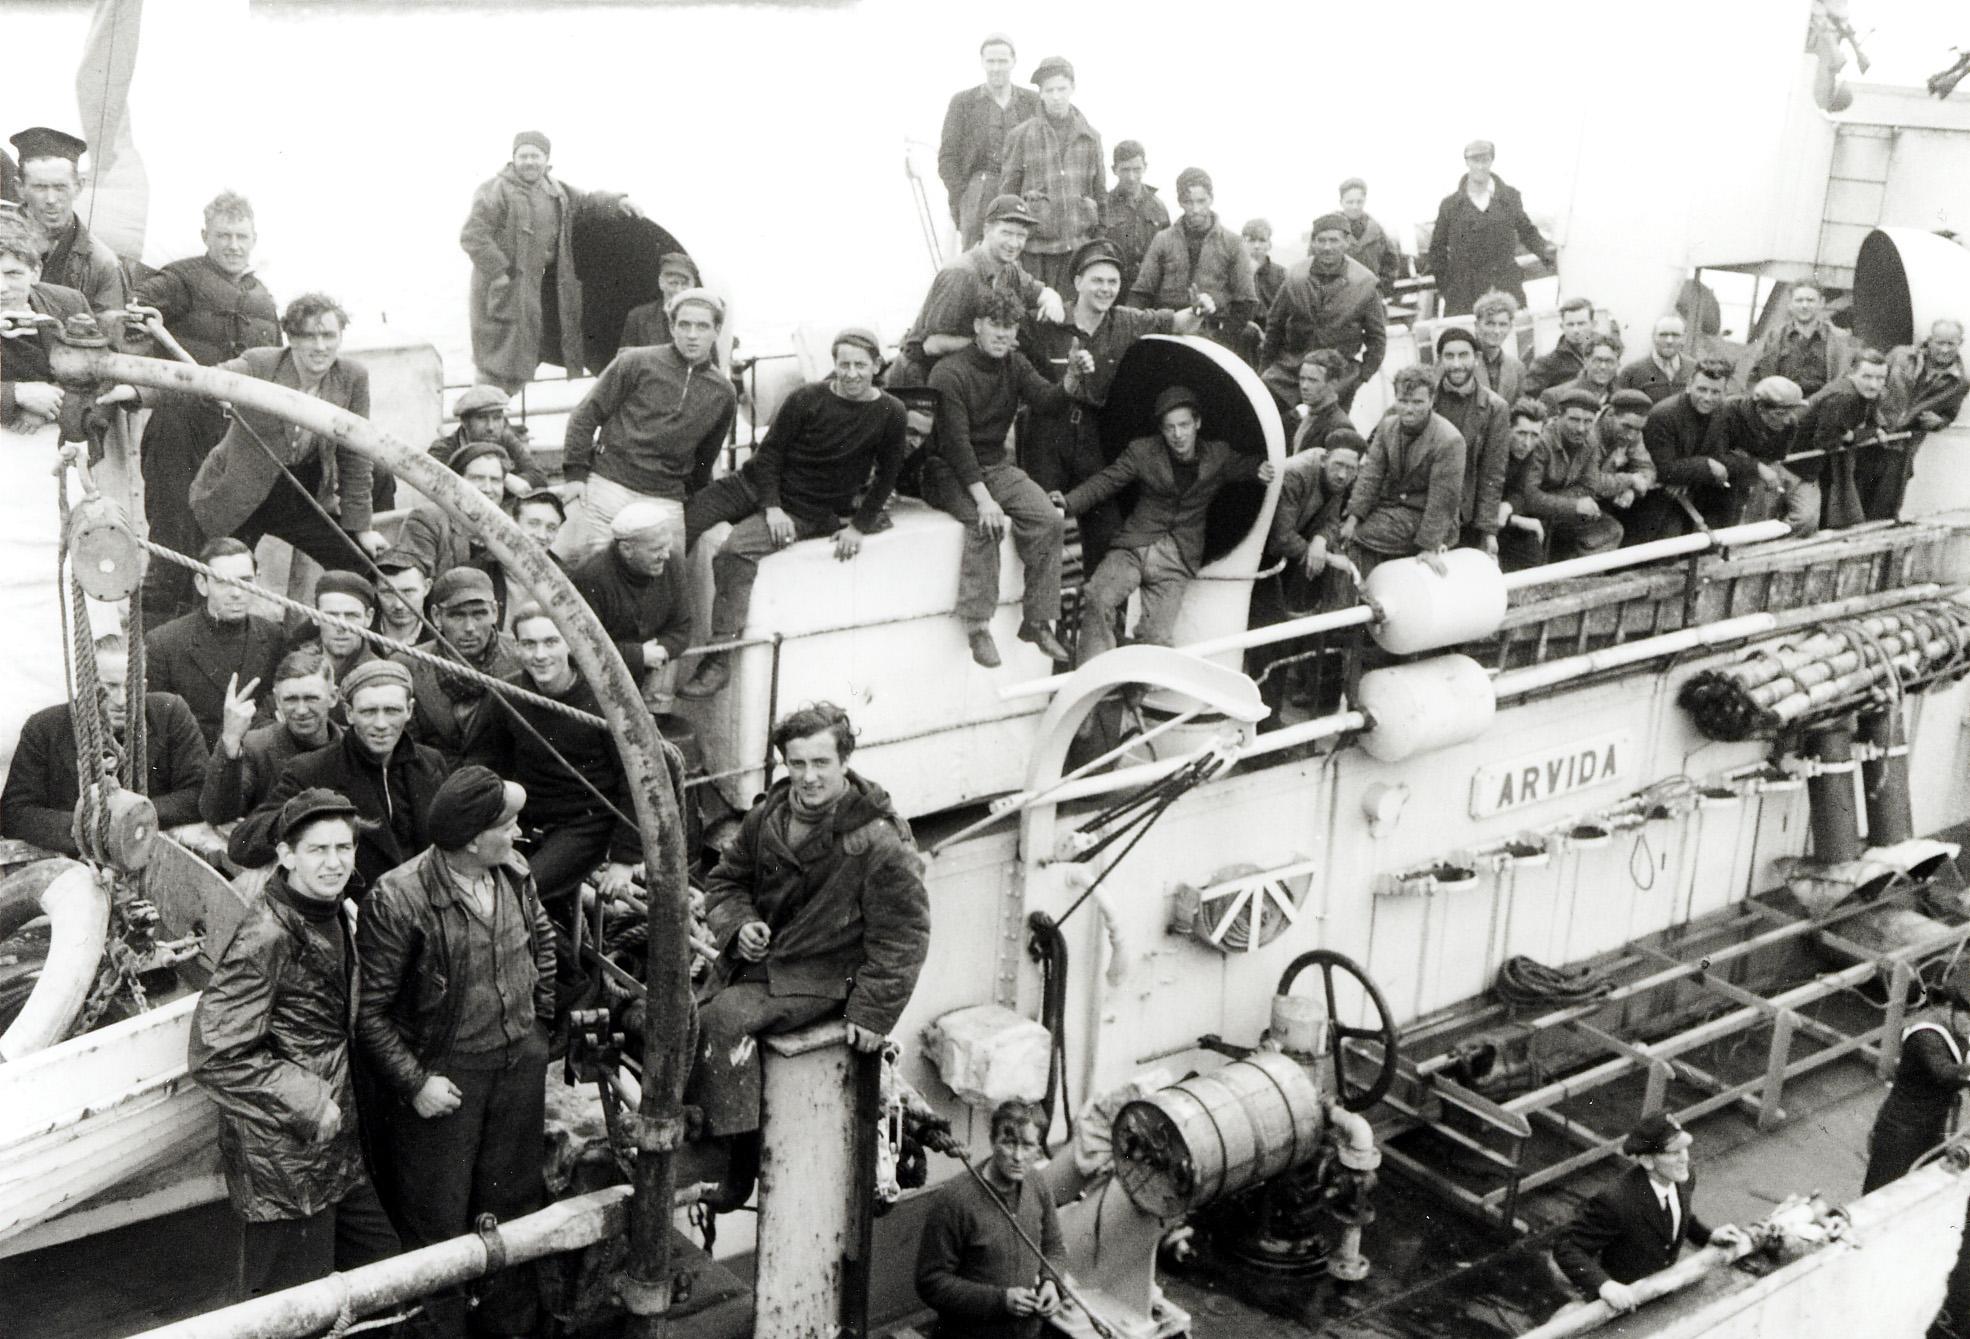 A boatload of seamen from a torpedoed ship aboard HMCS Arvida, St. John's, June 1945. 